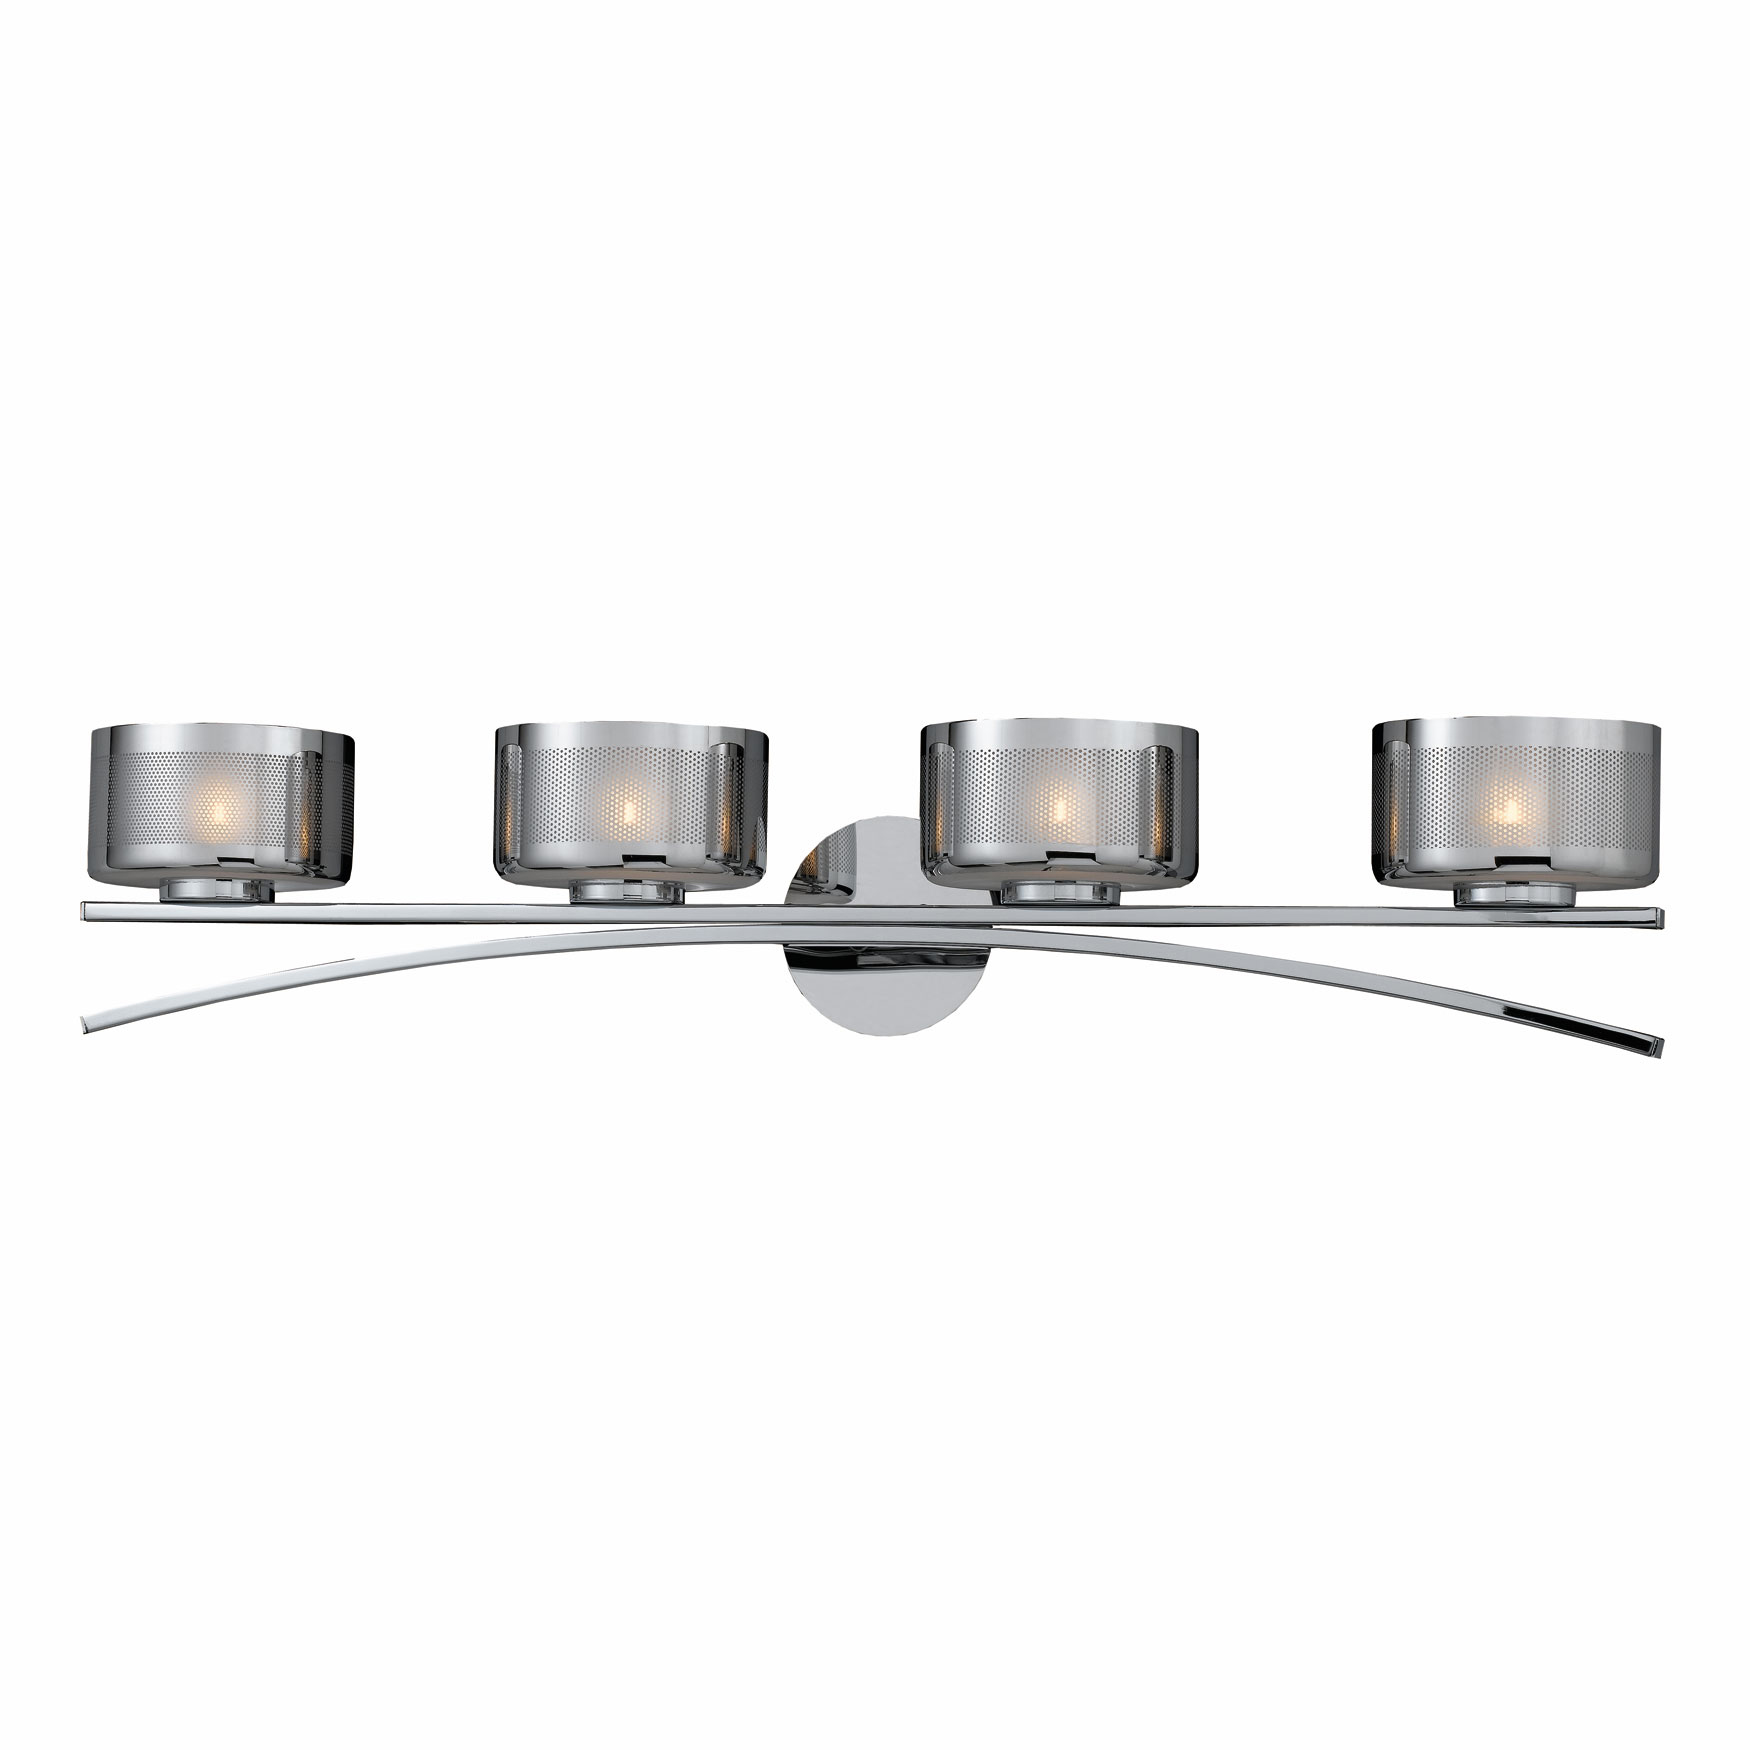 Lumenno Int Bodorlo Collection 4 Light Xenon Bath Vanity In A Chrome Finish Chrome Plated Finish ...